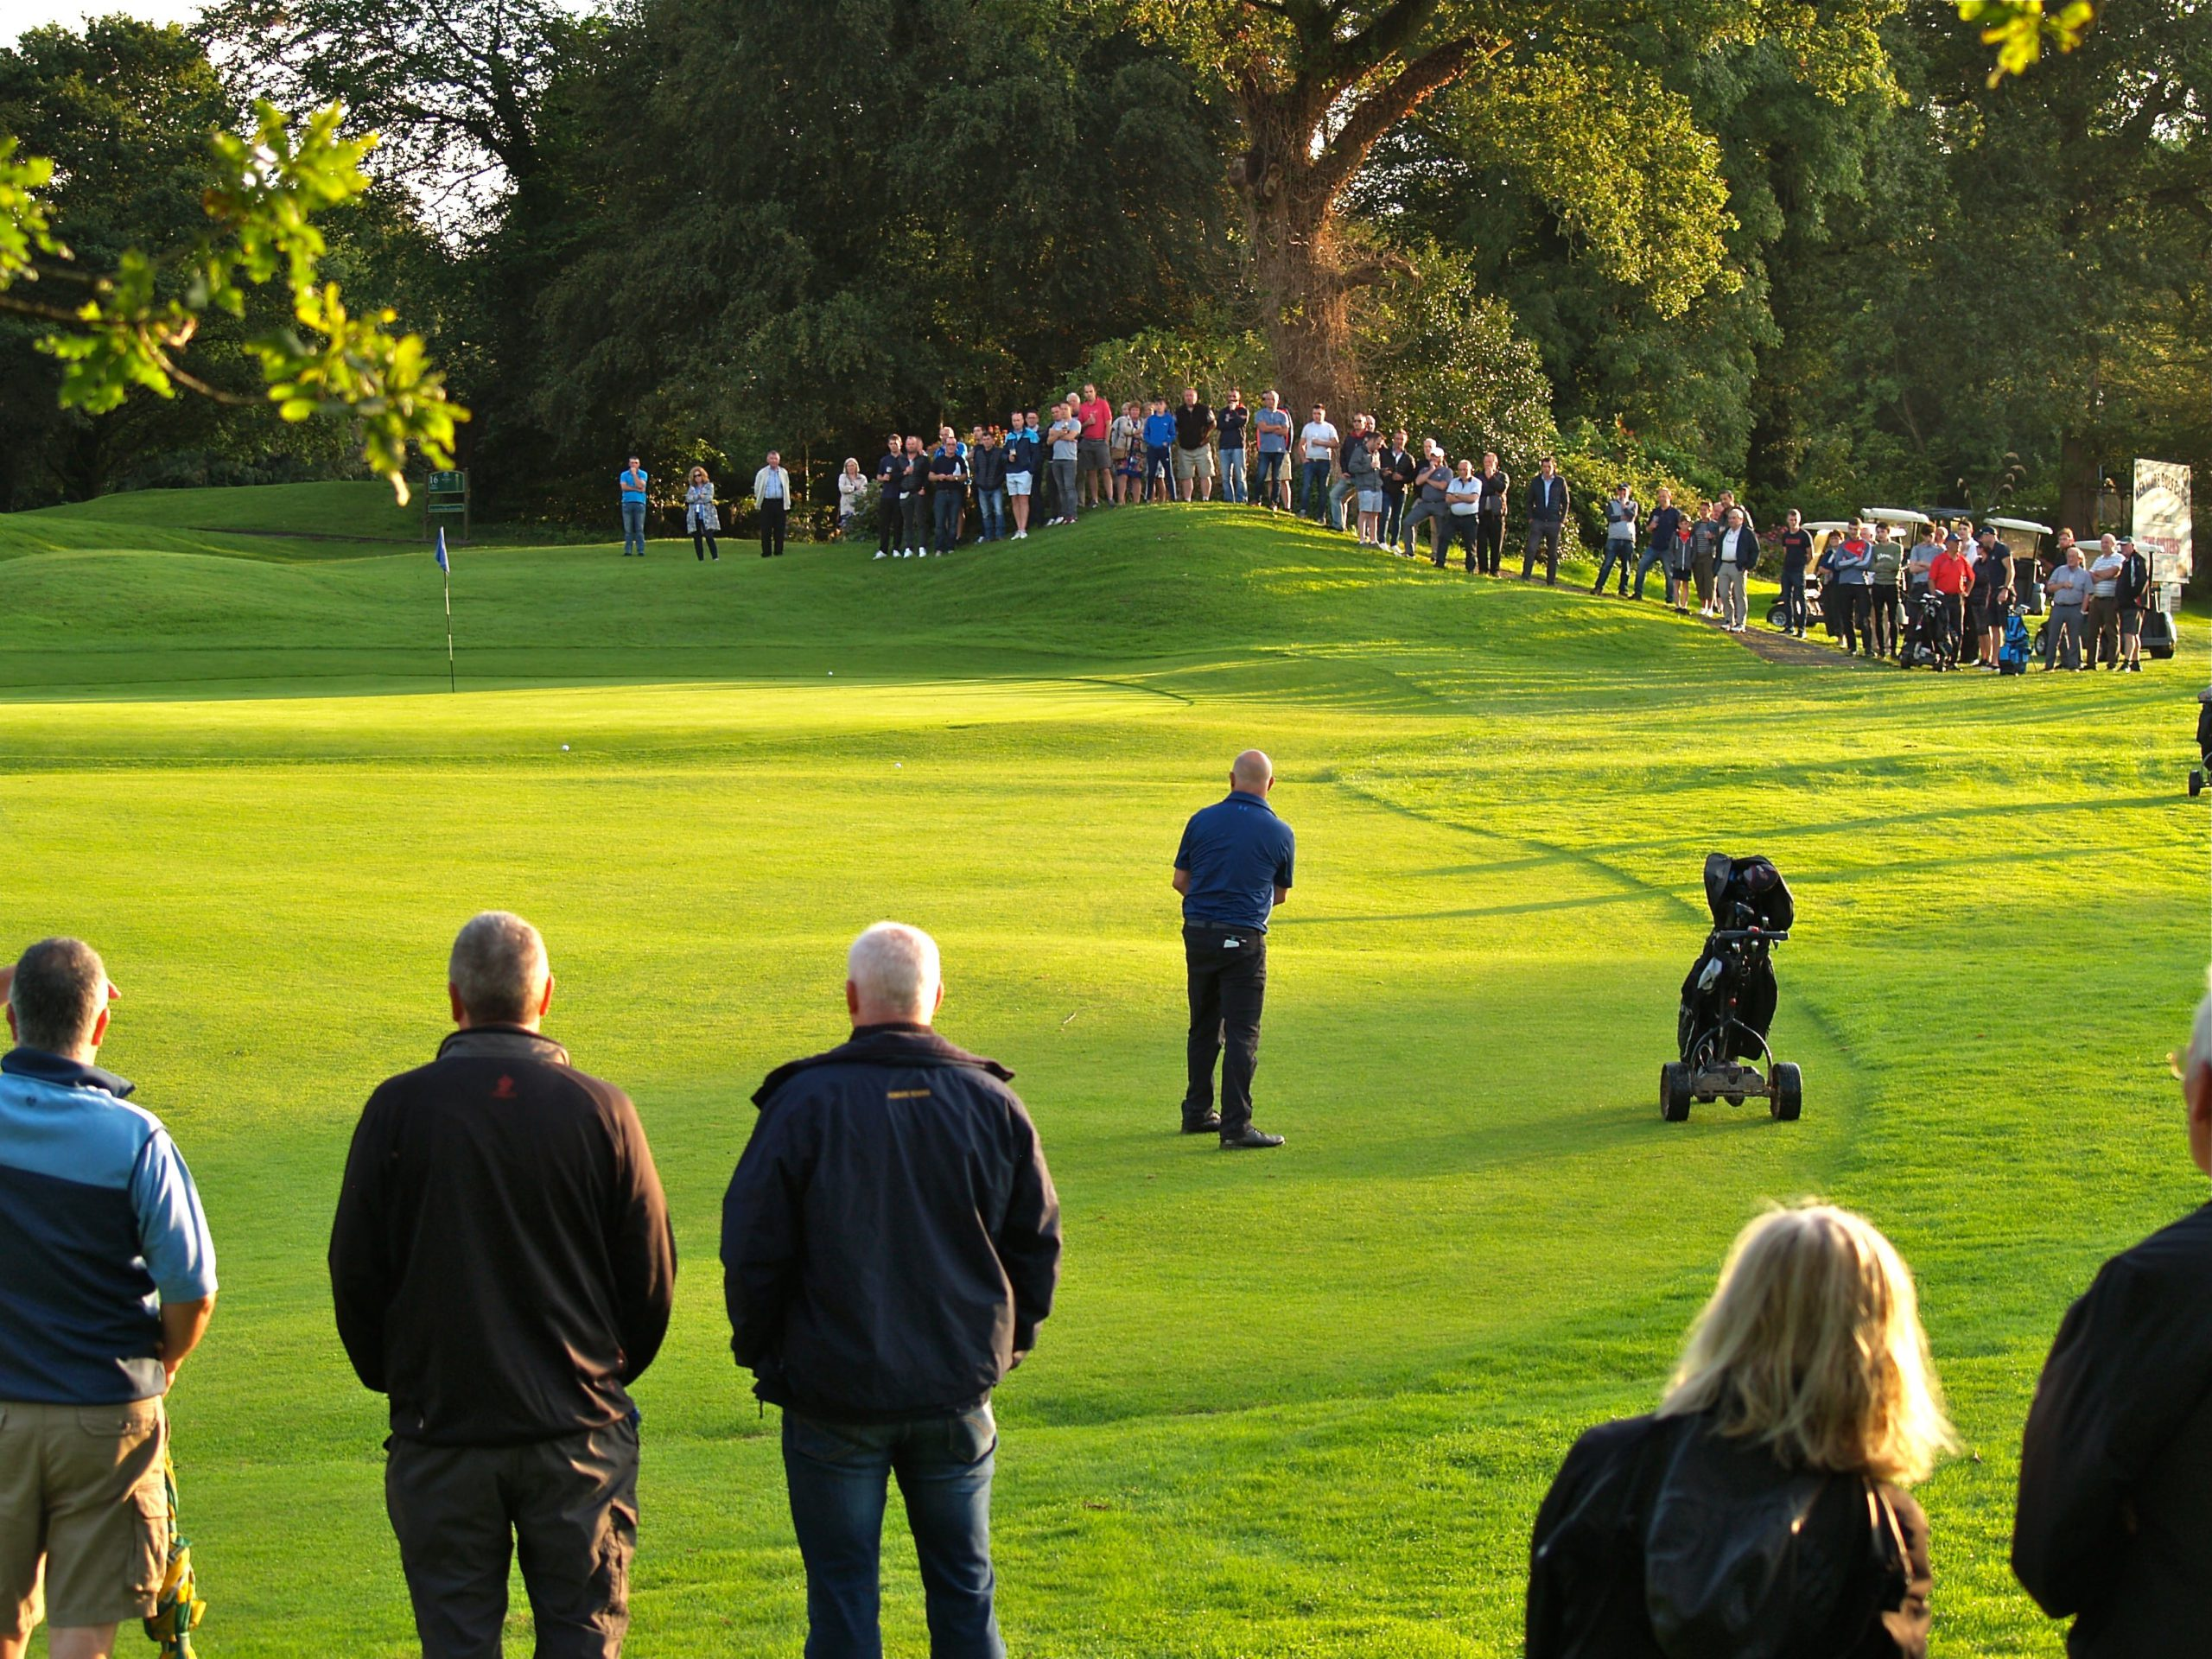 Crowd watching the playoff for the Captains Prize